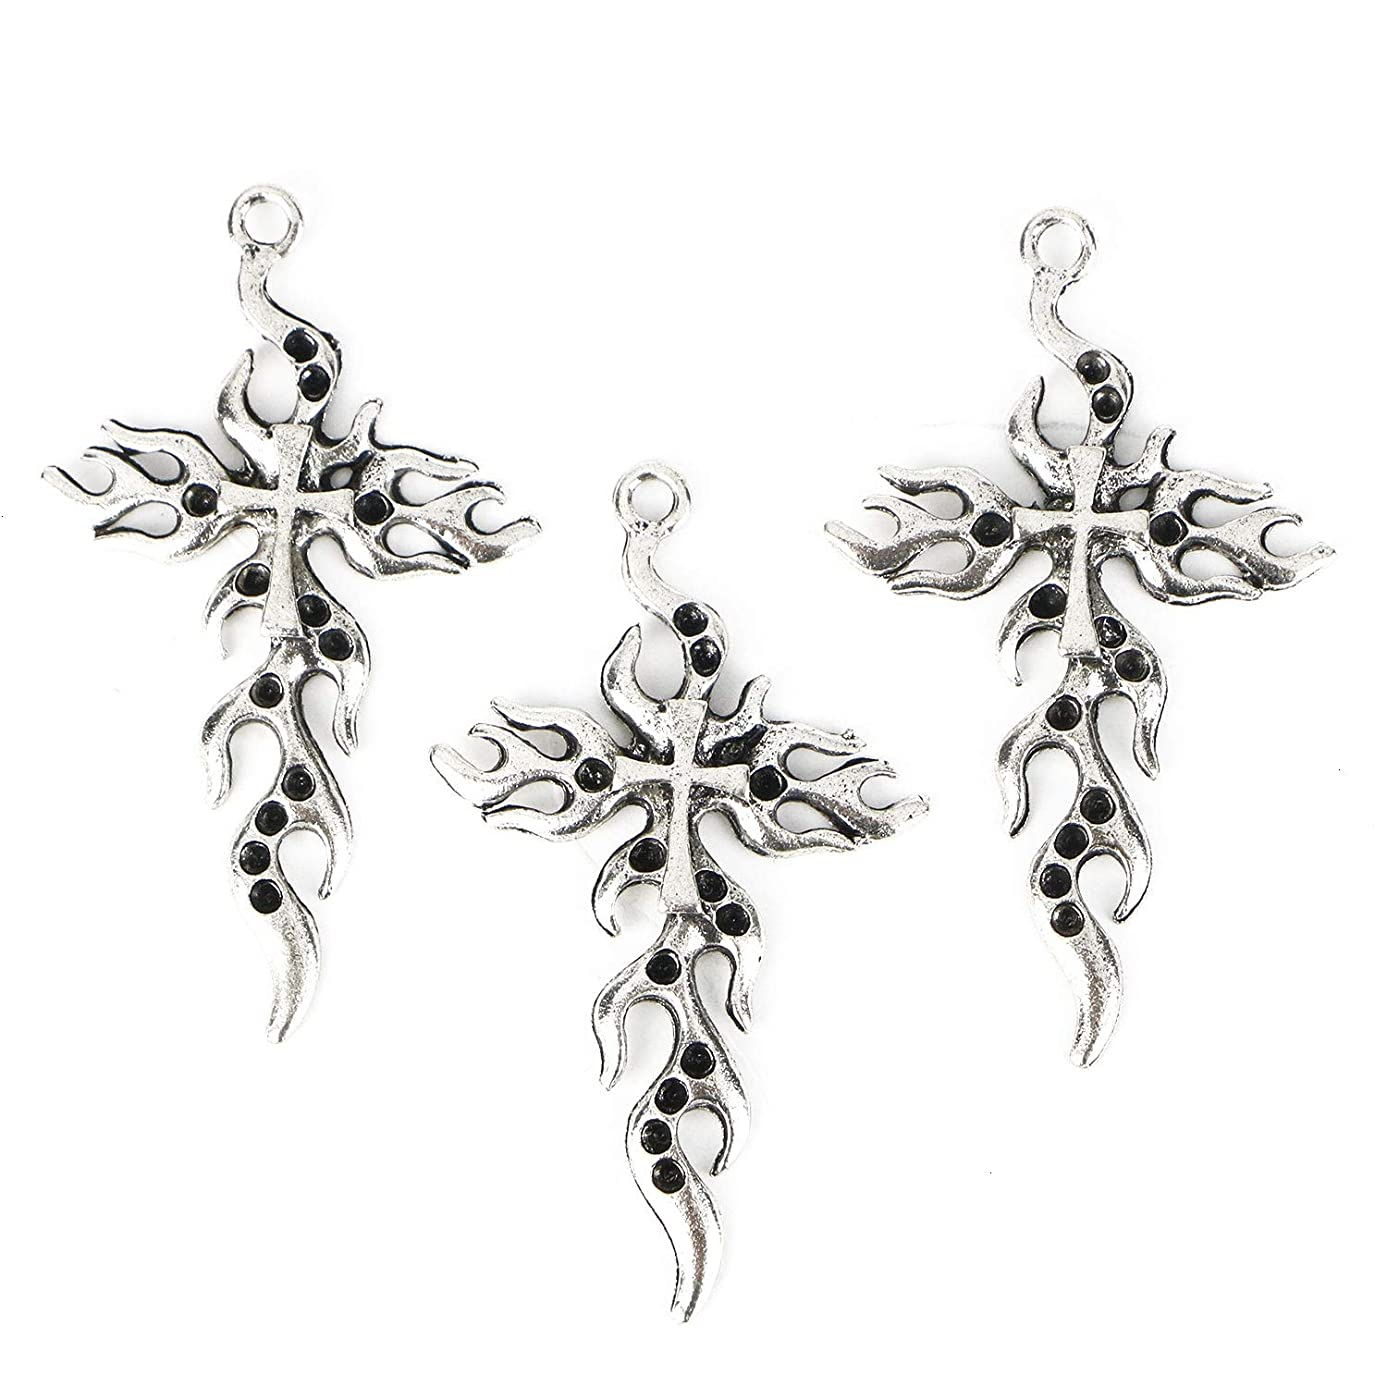 Monrocco 20Pcs Vintage Tibetan Silver Cross Flames fire Charms Pendant Jewelry Findings for Jewelry Making Necklace Bracelet DIY